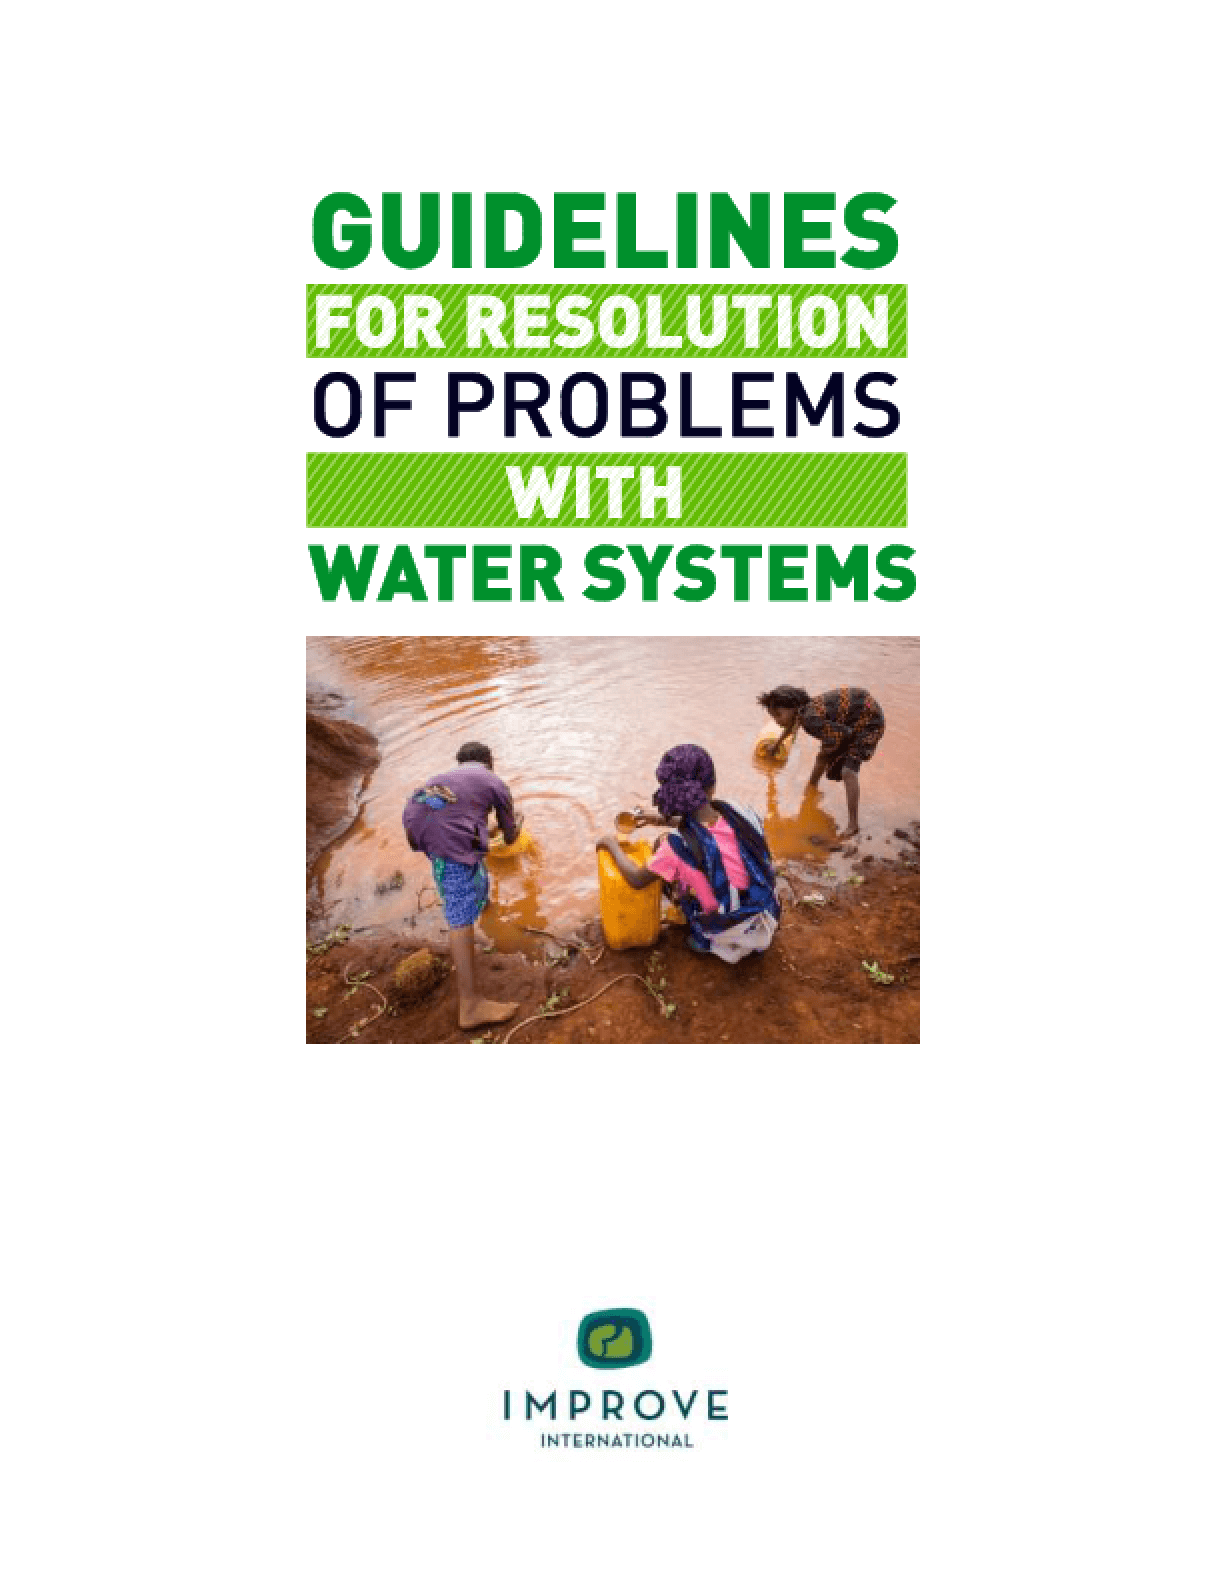 Guidelines for Resolution of Problems with Water Systems